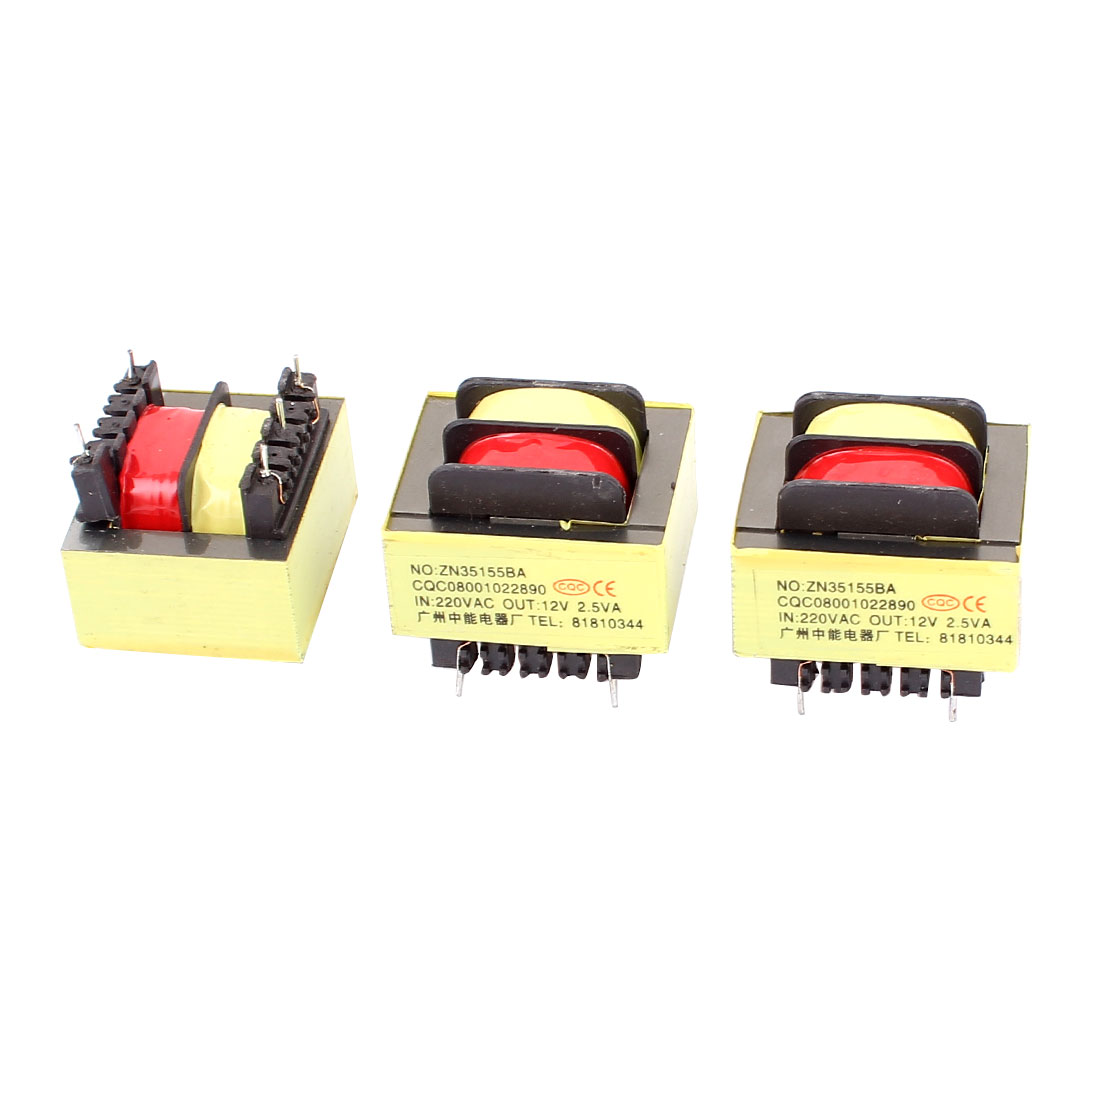 3Pcs 220V Input 12V 2.5VA Output Yellow Red Ferrite Core Power Transformer w 5 Terminals